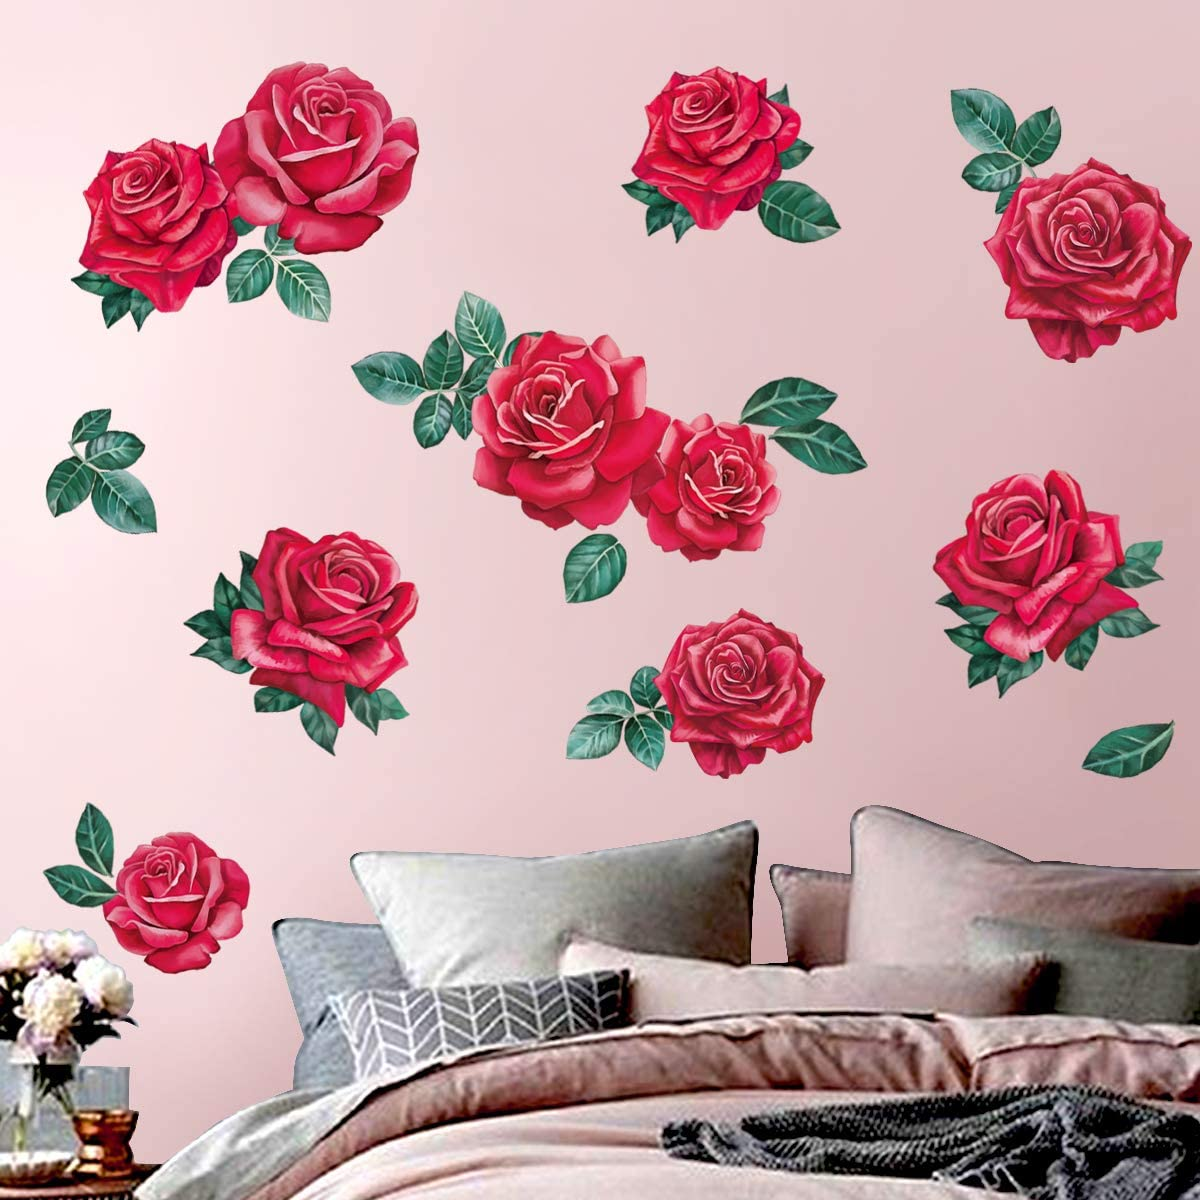 Bedroom Flower Roses Wall Stickers Wall Decals Wall Graphics Living Room Decor